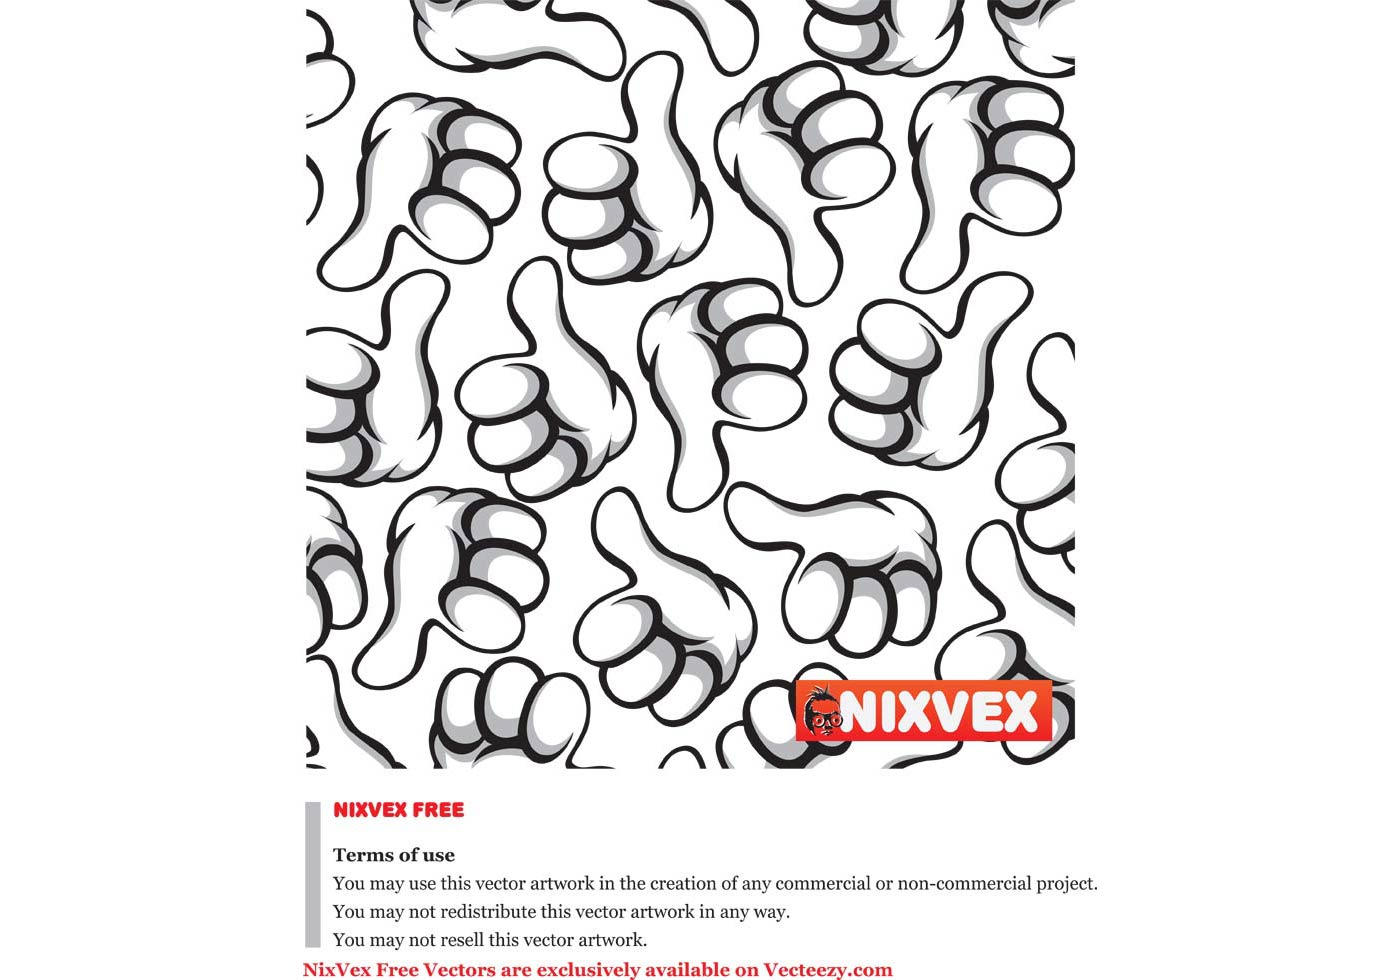 Nixvex Thumbs Up Free Vector